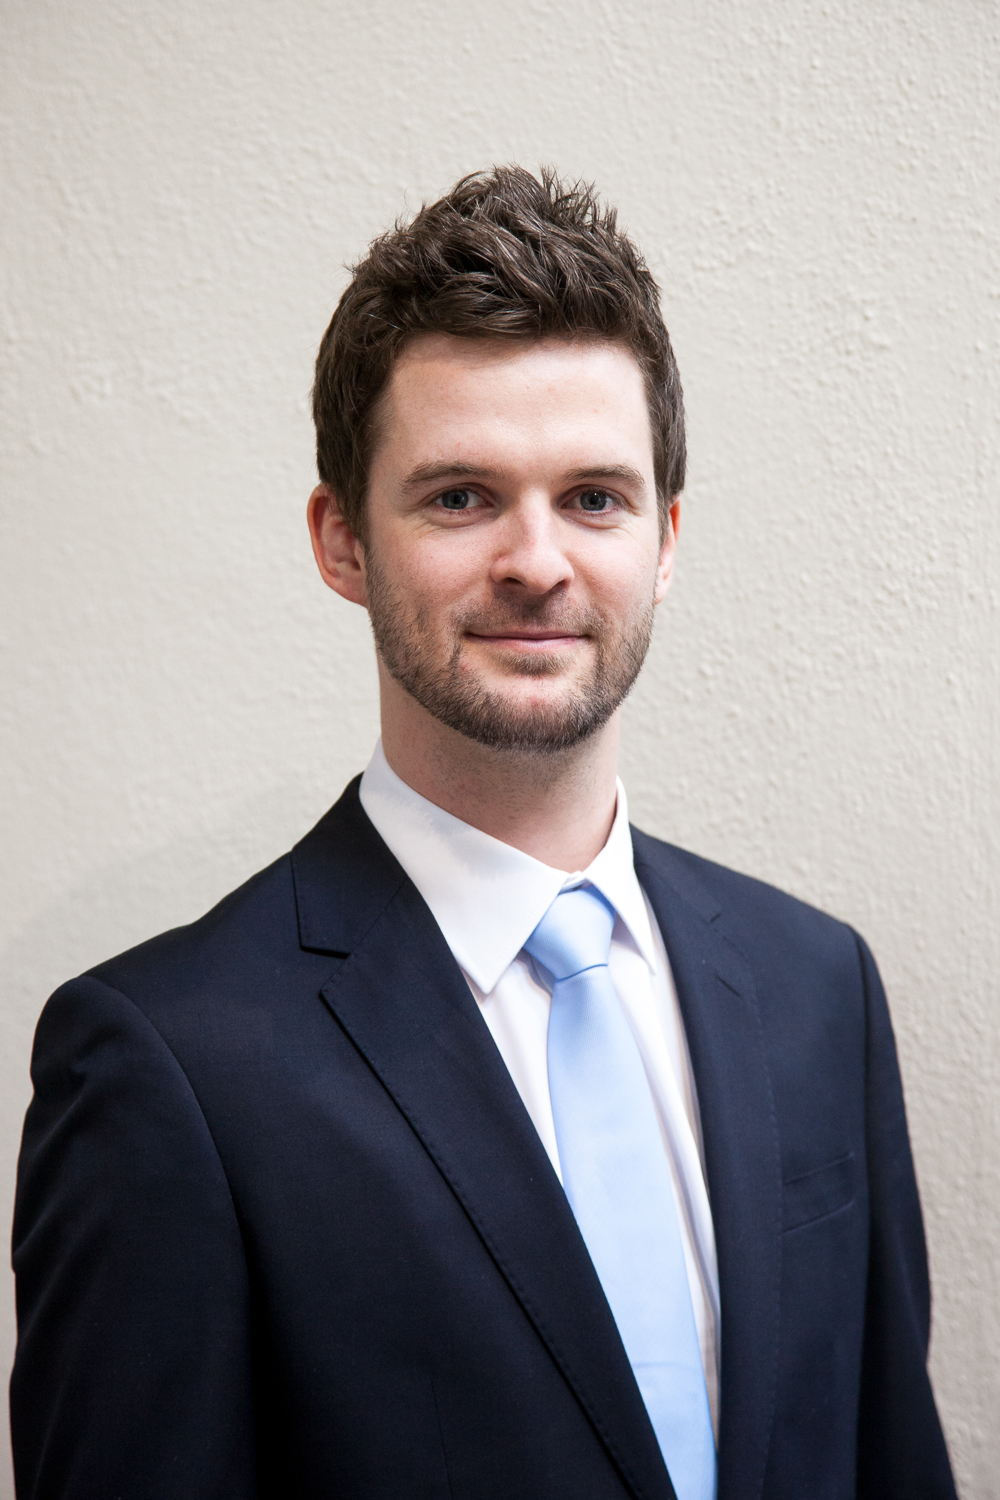 CIAN TWOMEY - ASSOCIATE director   CIAN.TWOMEY@CSCONSULTING.IE